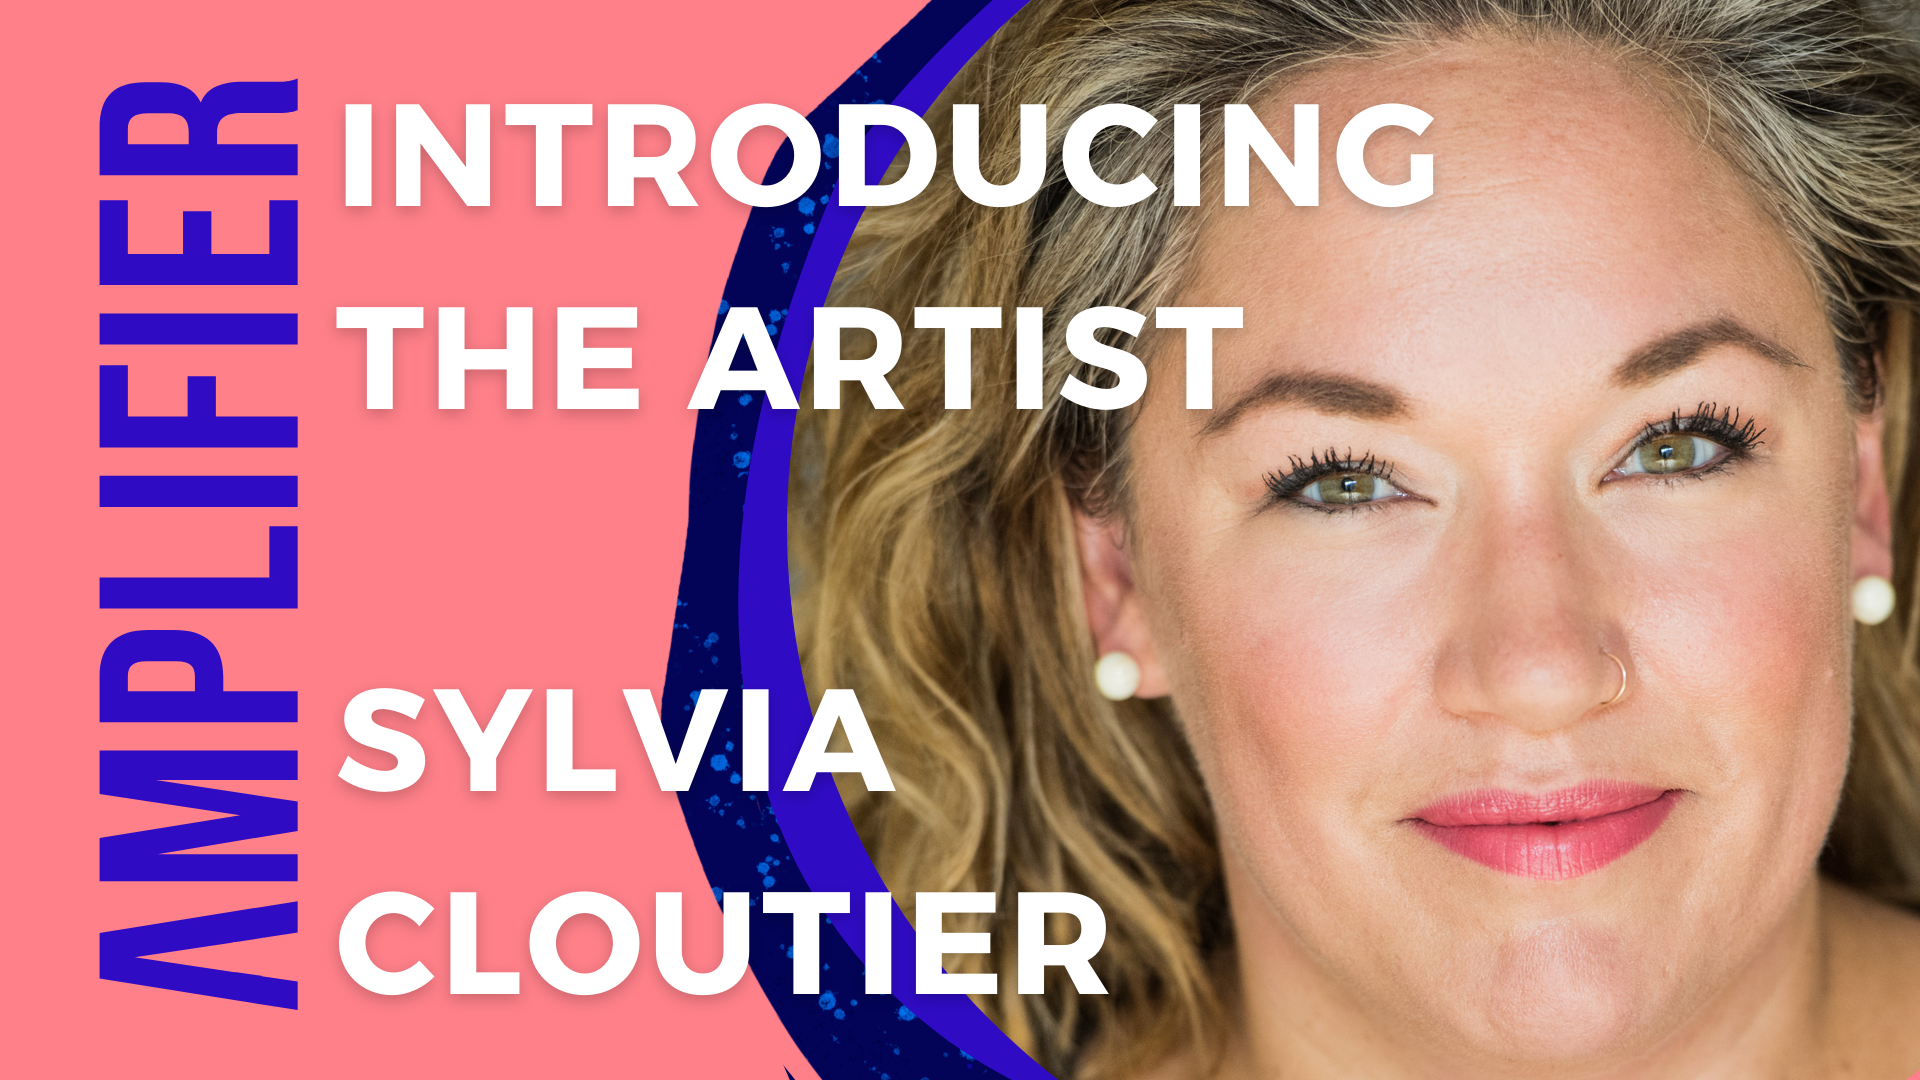 Photo of Sylvia Cloutier, artist of the AMPLIFIER program.